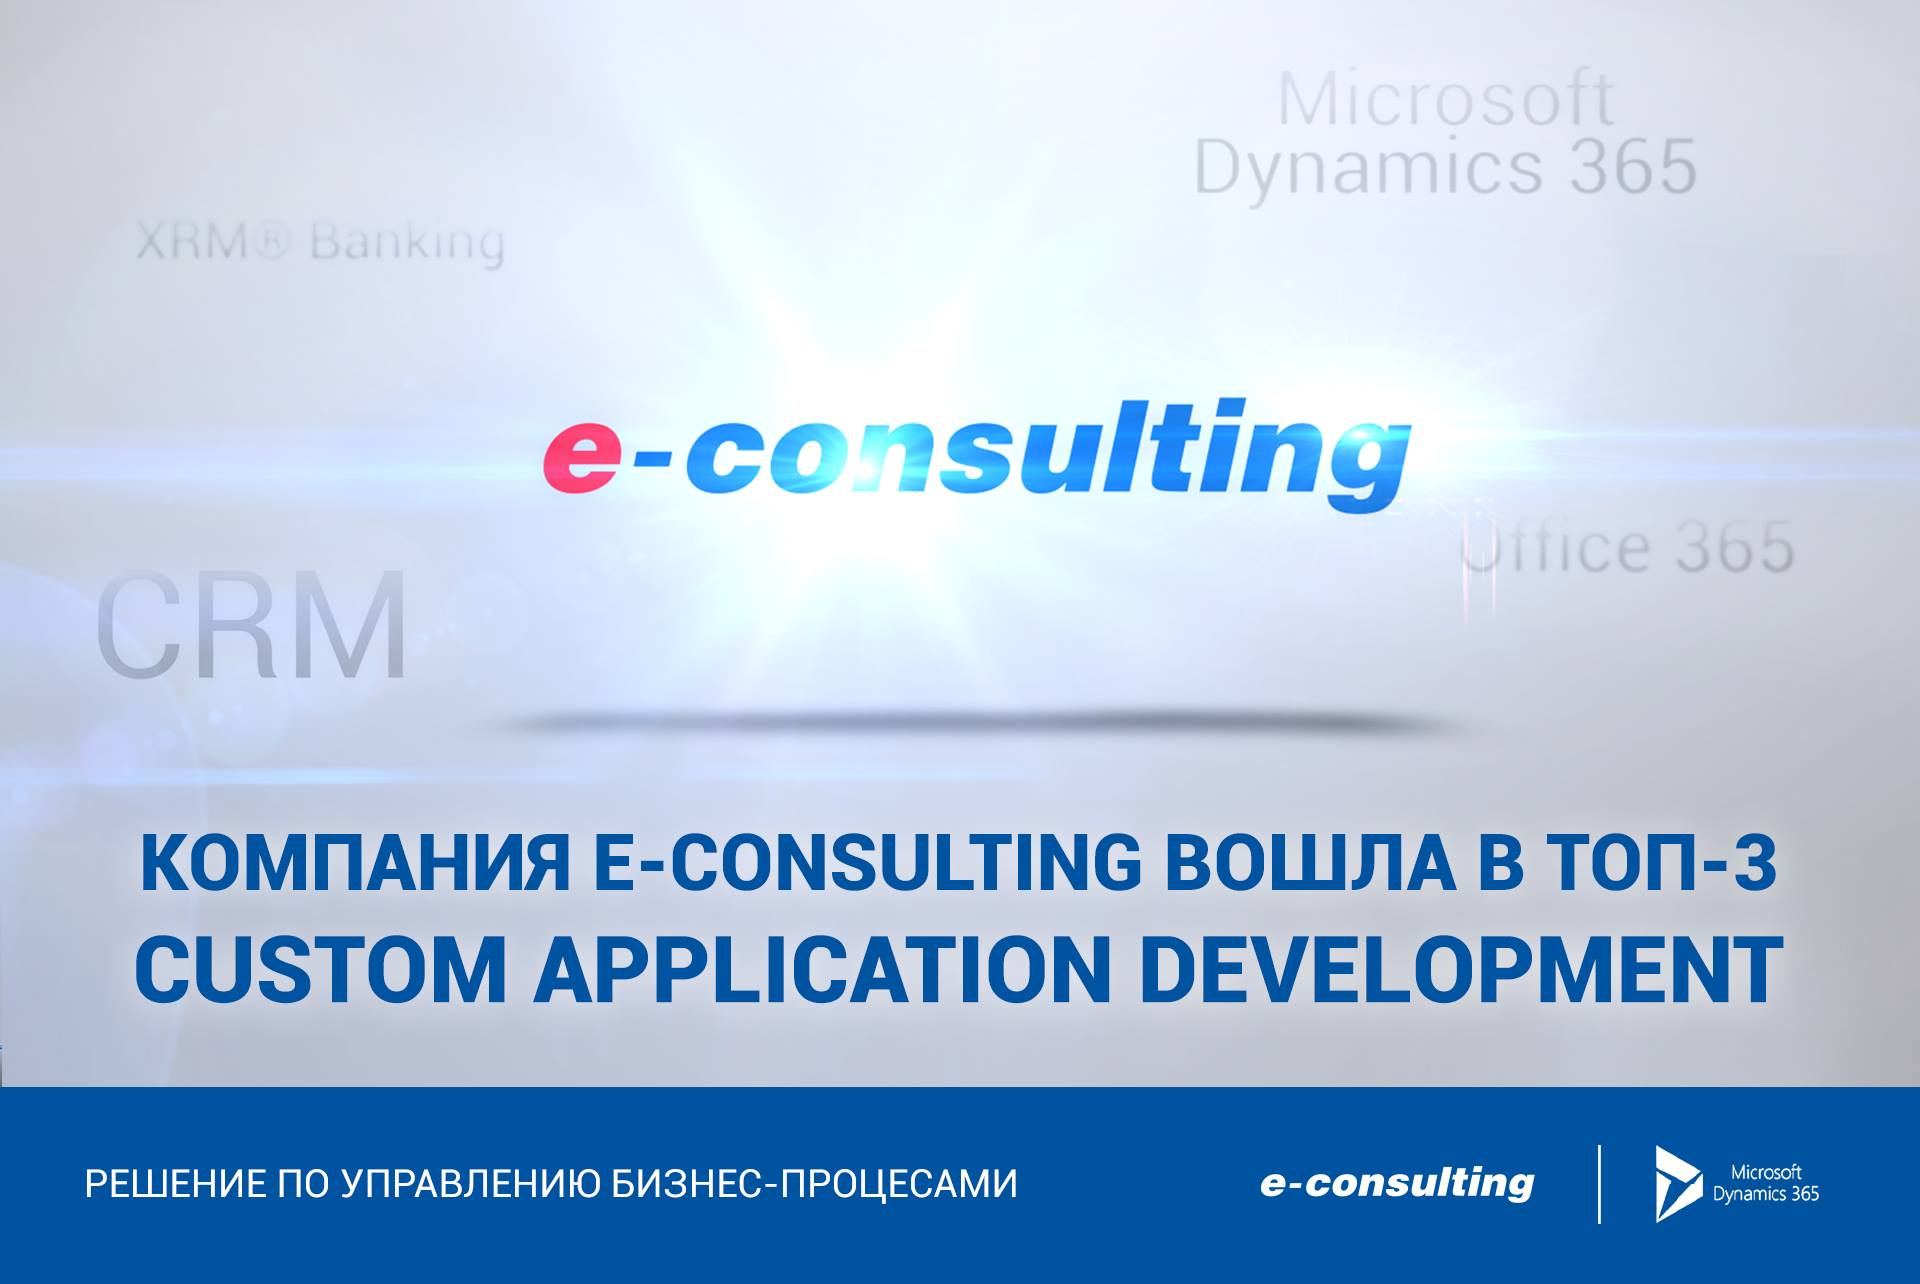 E-consulting в топ-3 Custom Application Development